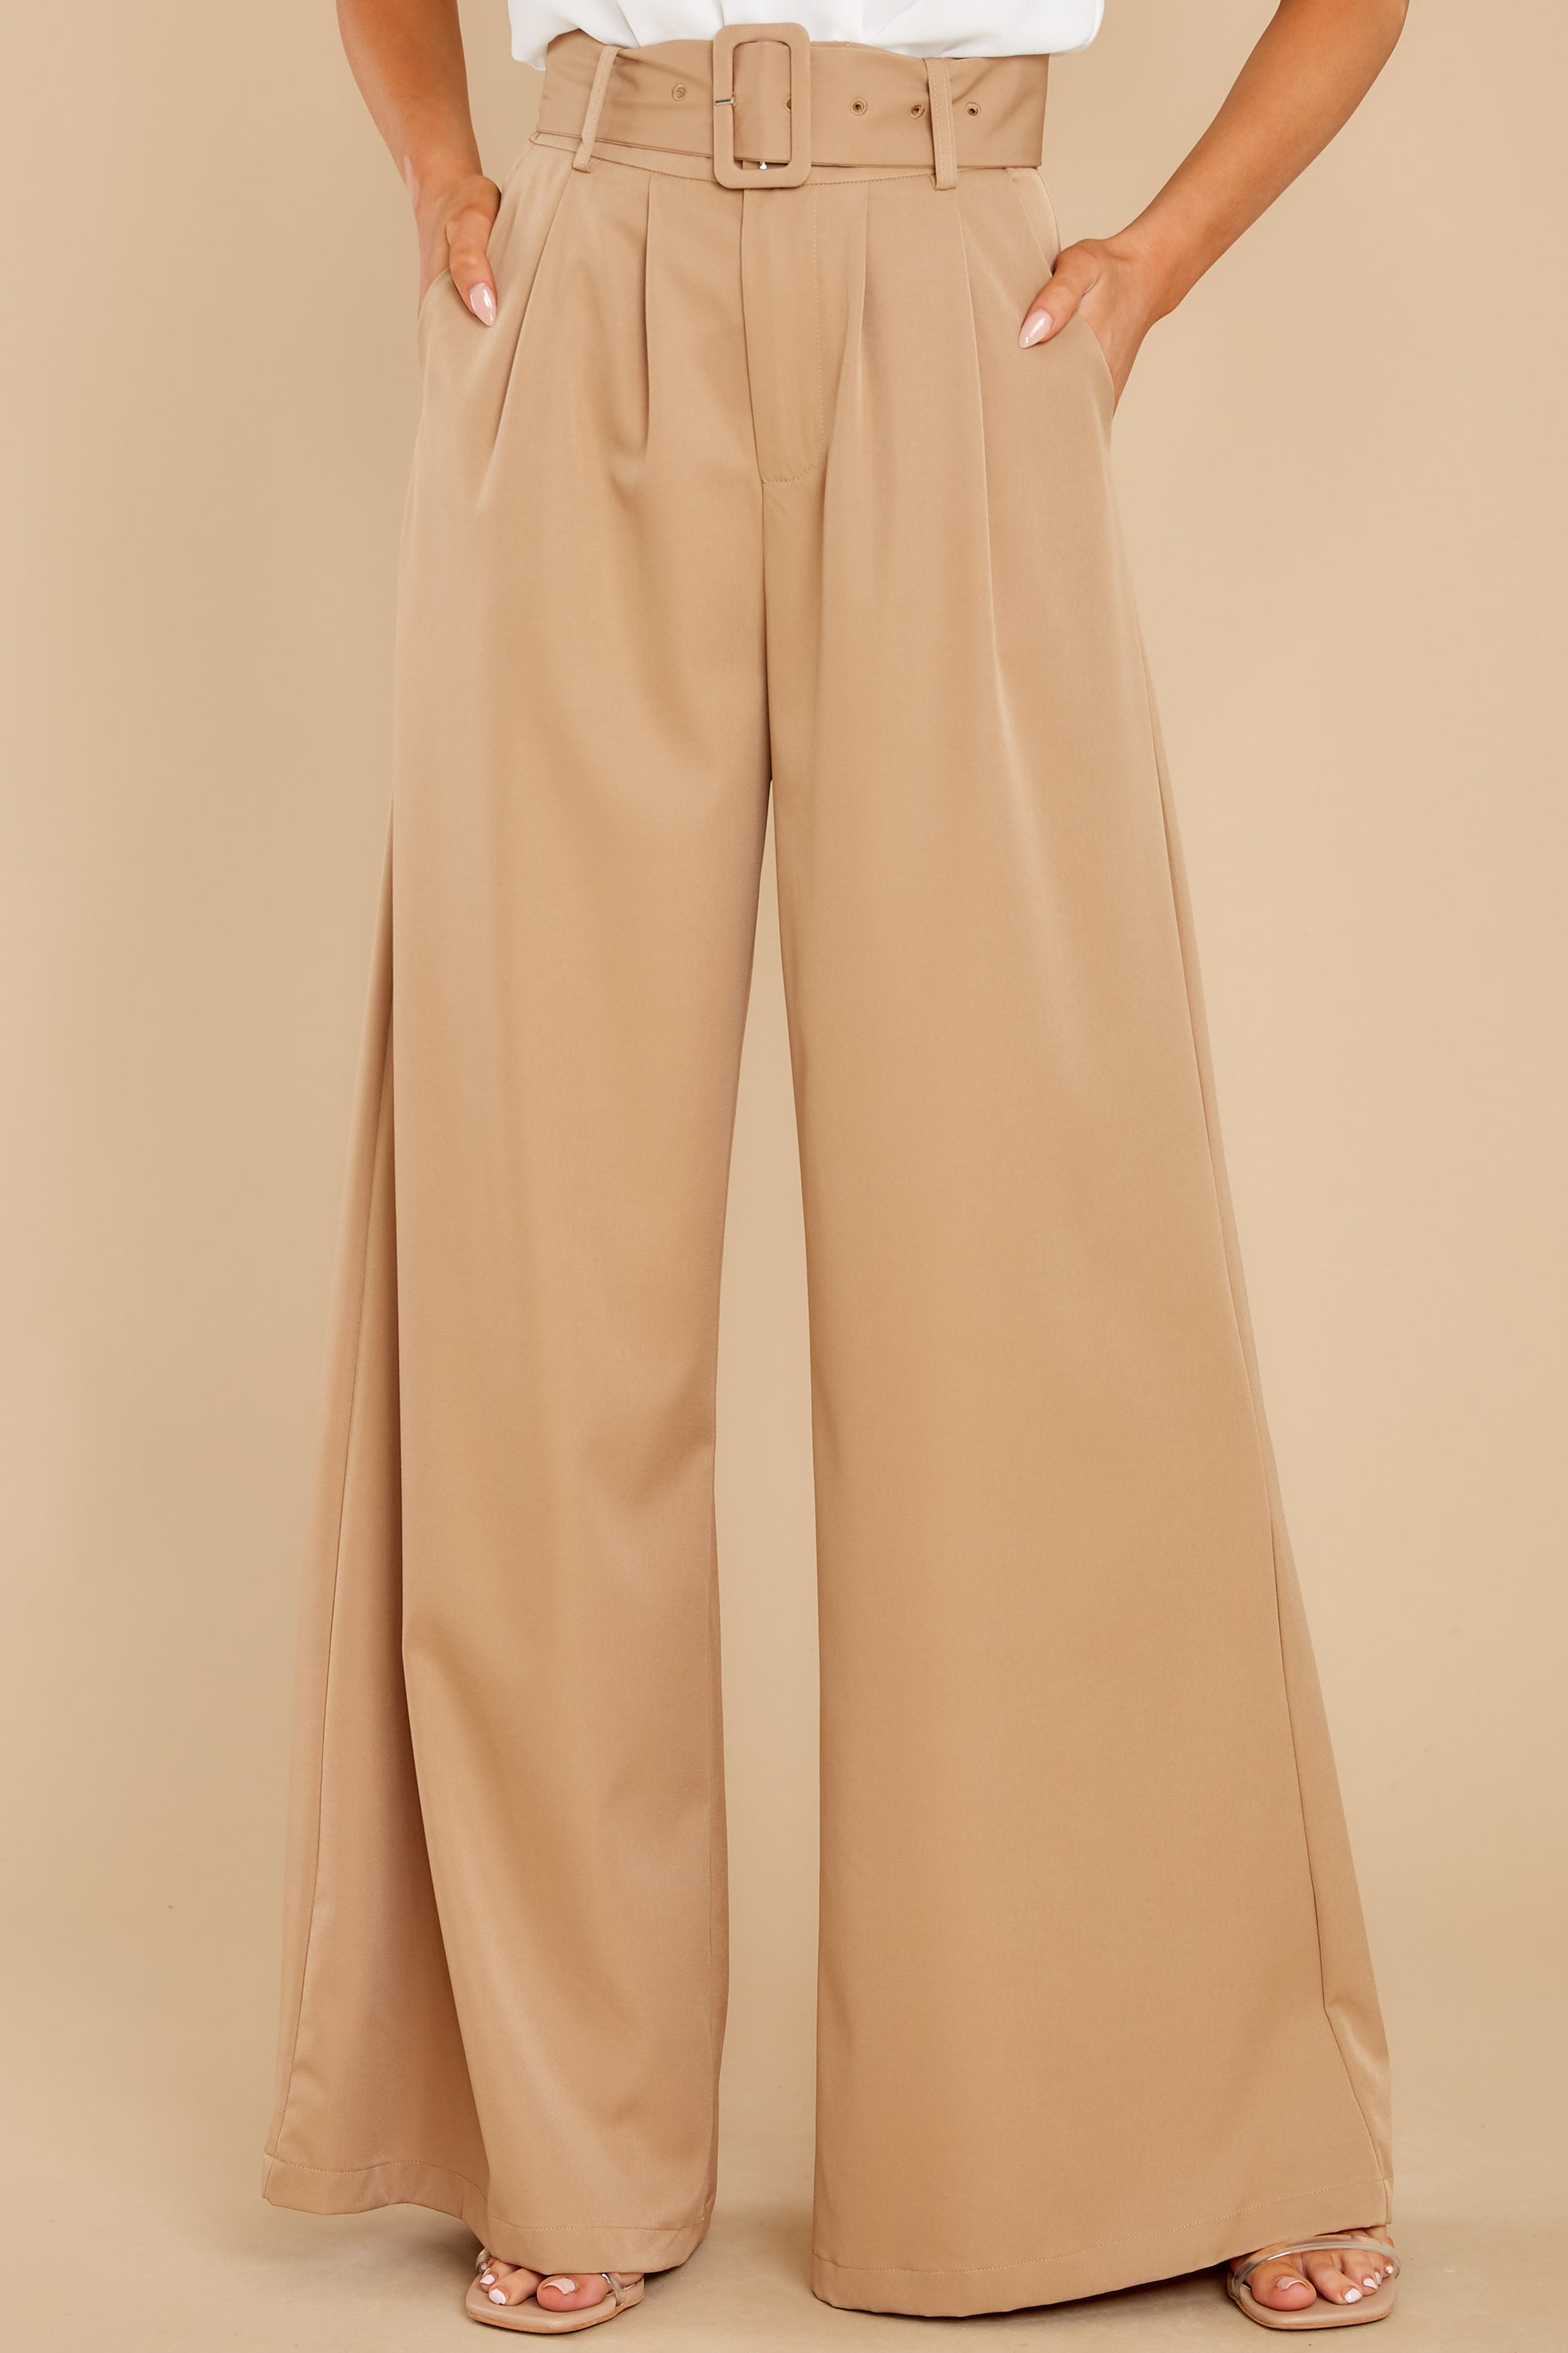 60s – 70s Pants, Jeans, Hippie, Bell Bottoms, Jumpsuits State The Facts Taupe Pants Beige $44.00 AT vintagedancer.com